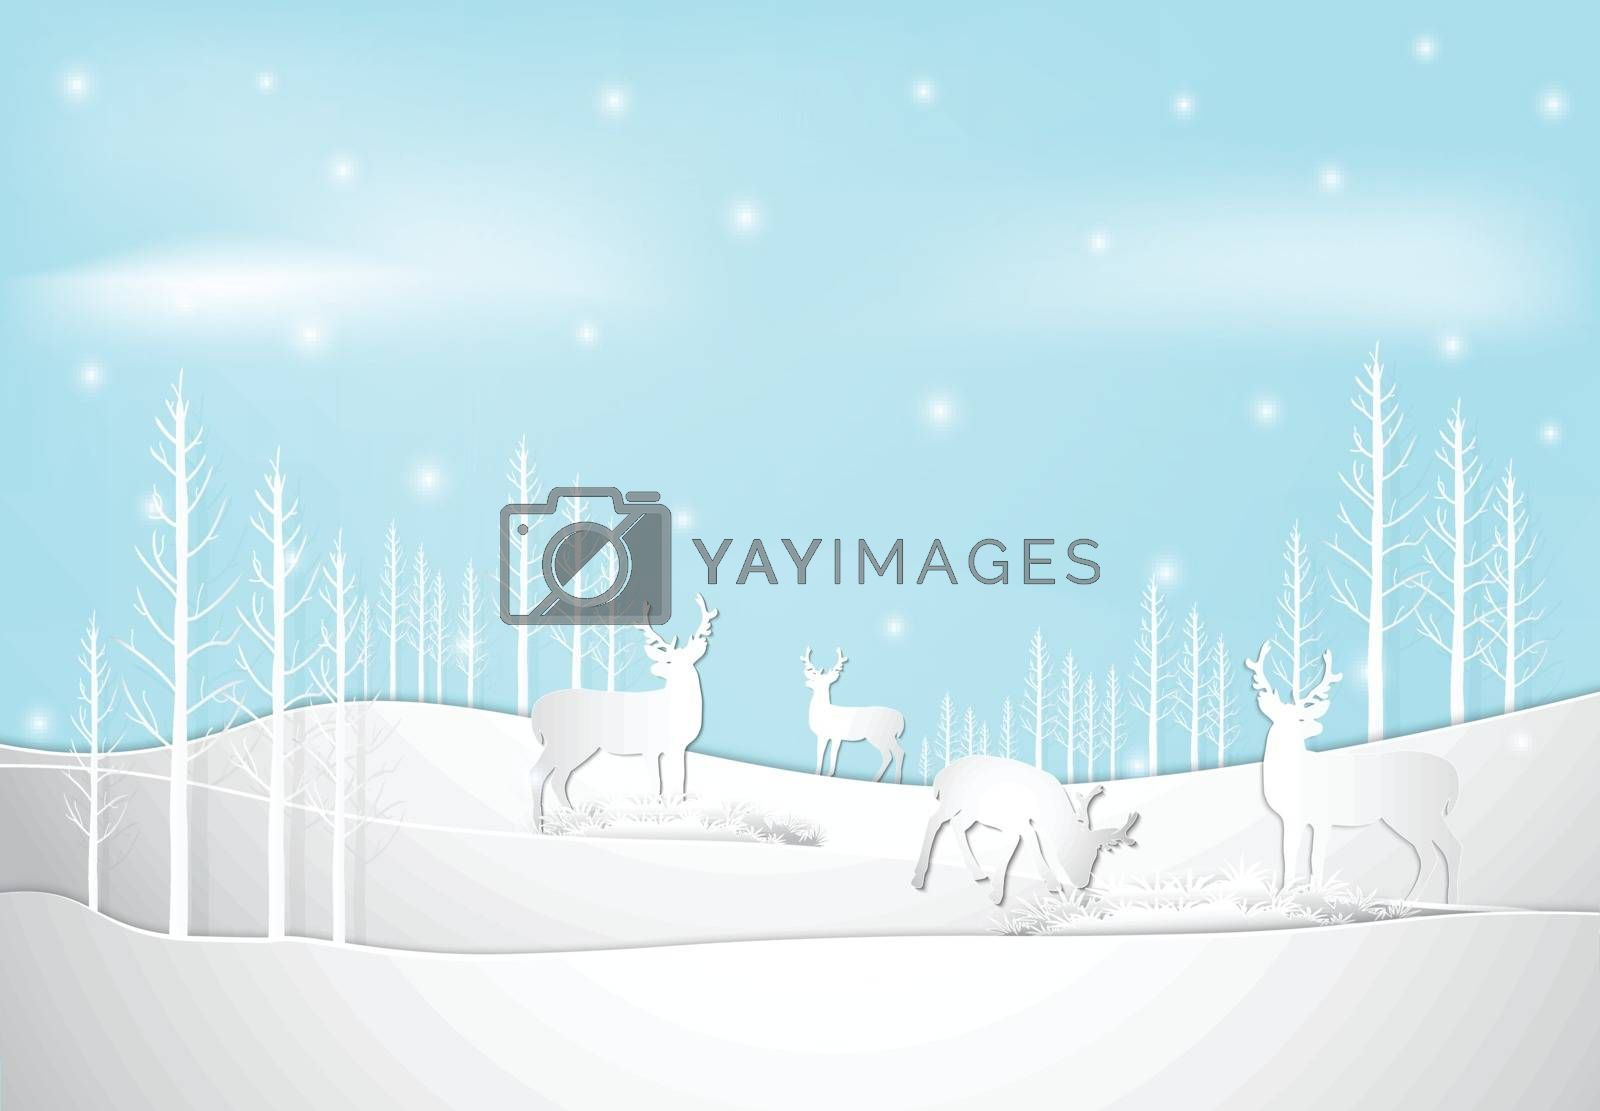 Winter holiday deer with snow and blue sky background. Christmas season paper art style illustration.